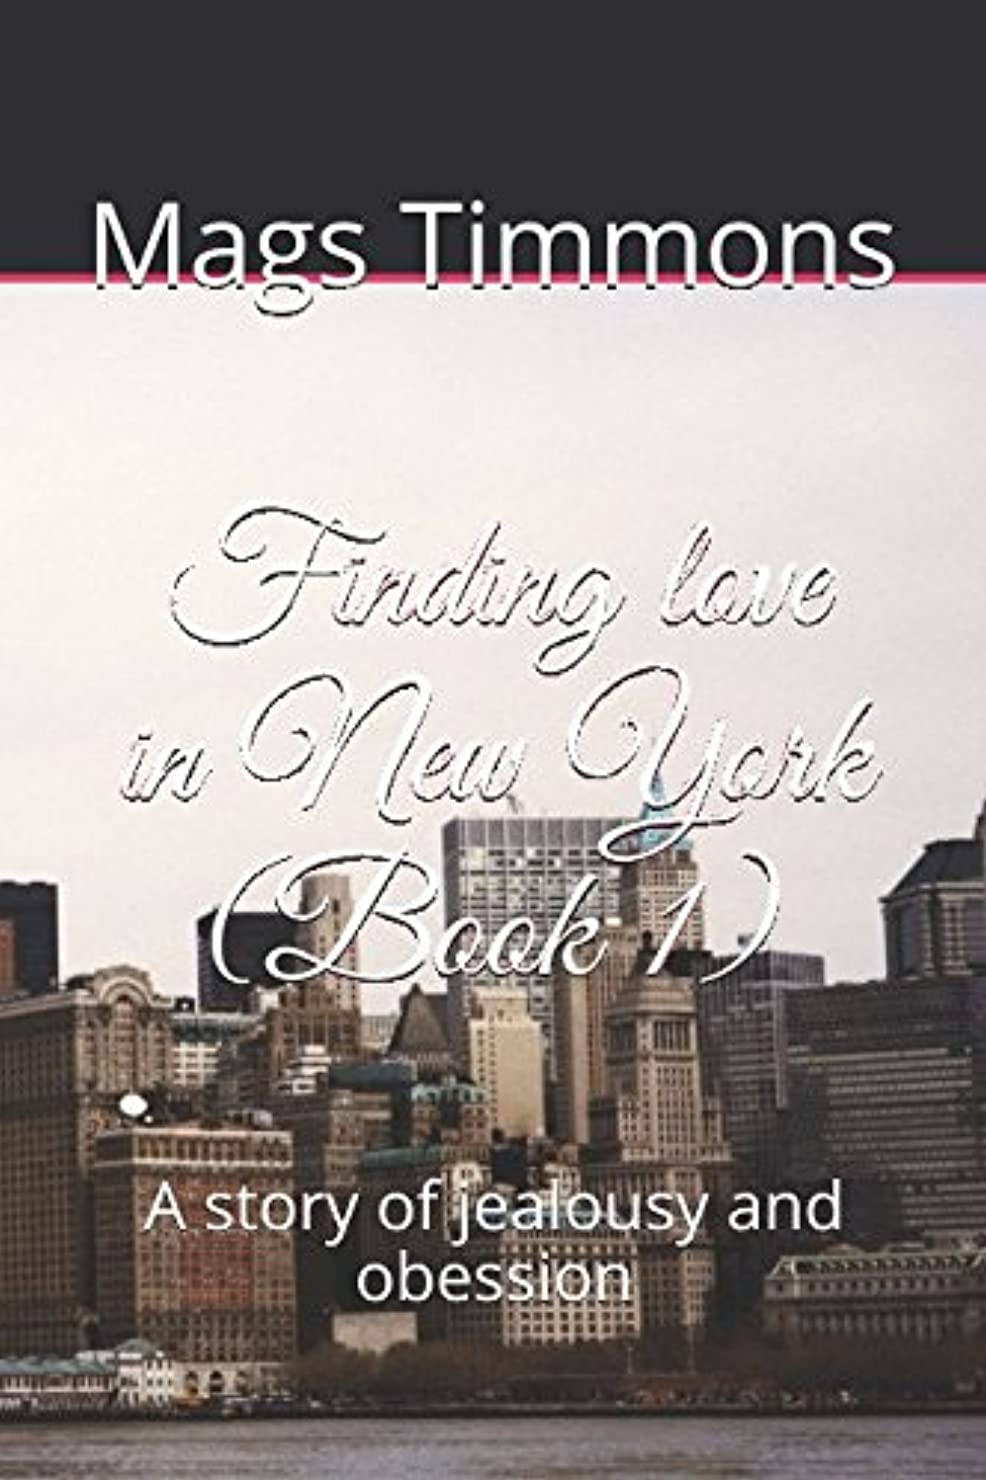 期待浴室大きなスケールで見るとFinding love in New York (Book 1): A story of jealousy and obsession